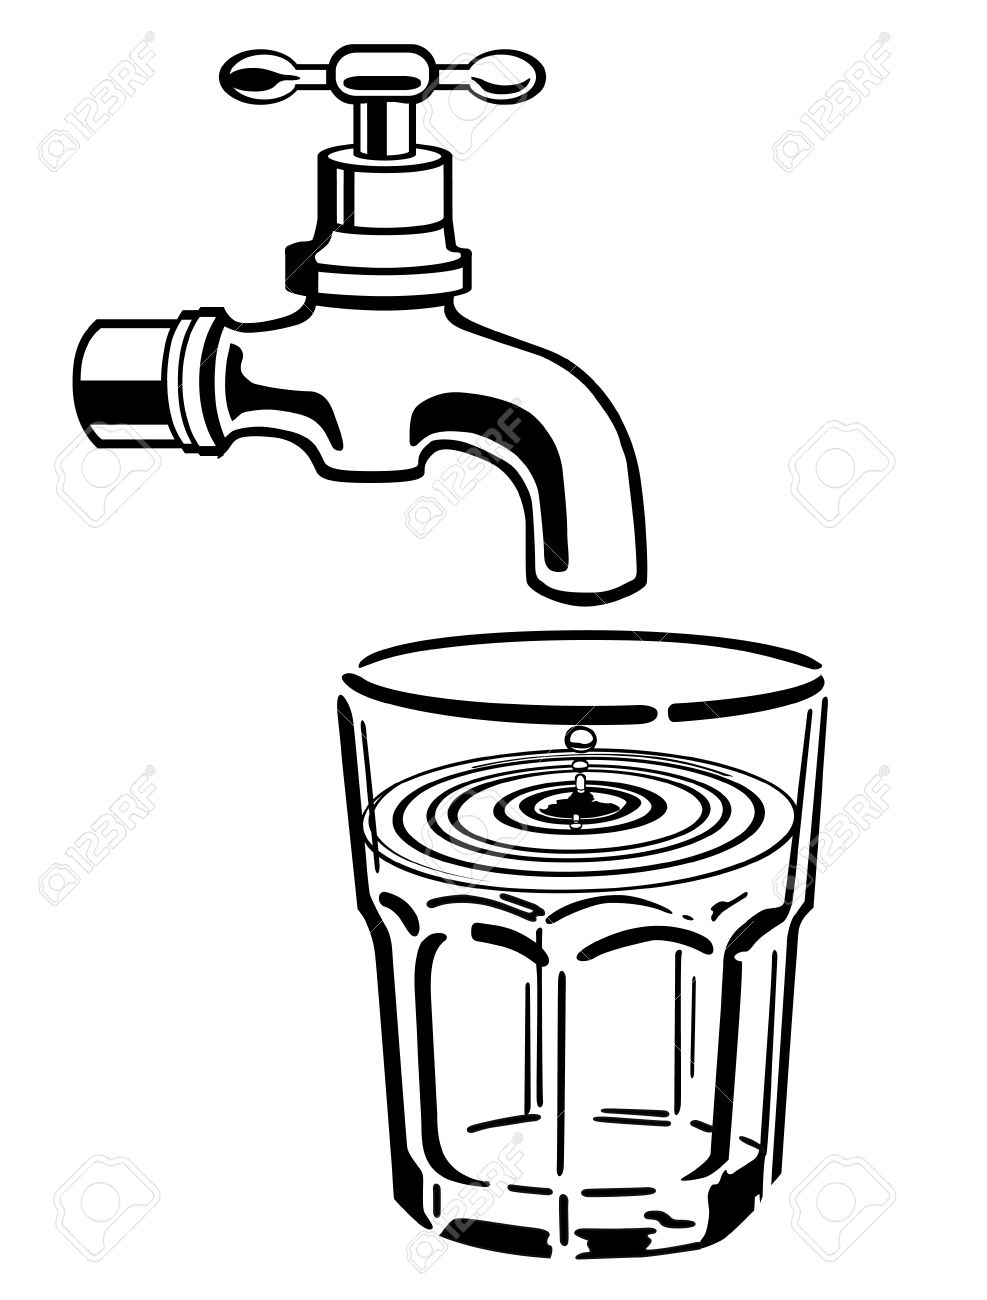 Save water clipart black and white 6 clipart station